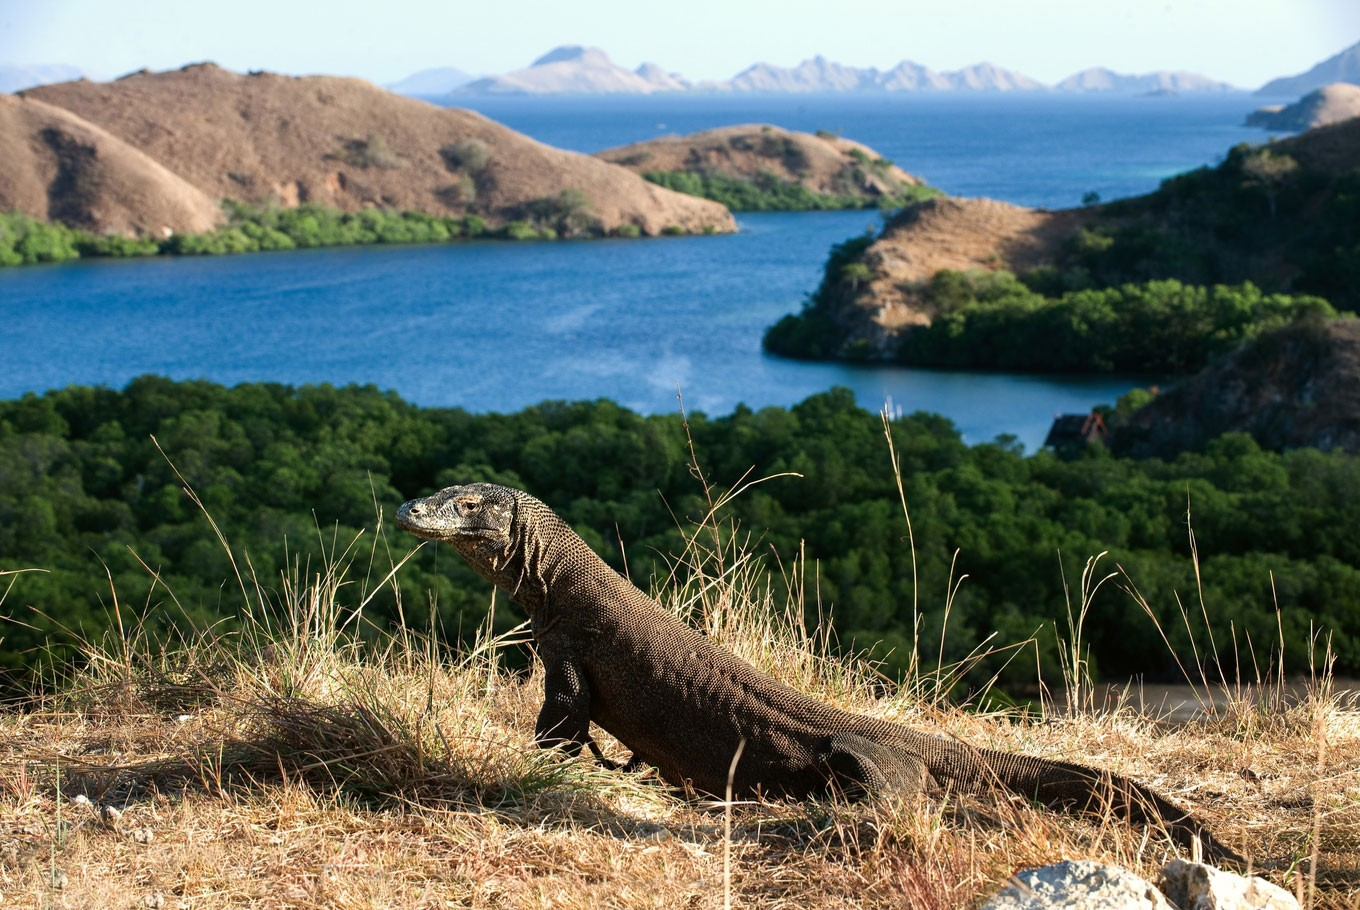 Tourism to Komodo Island must be controlled: Official